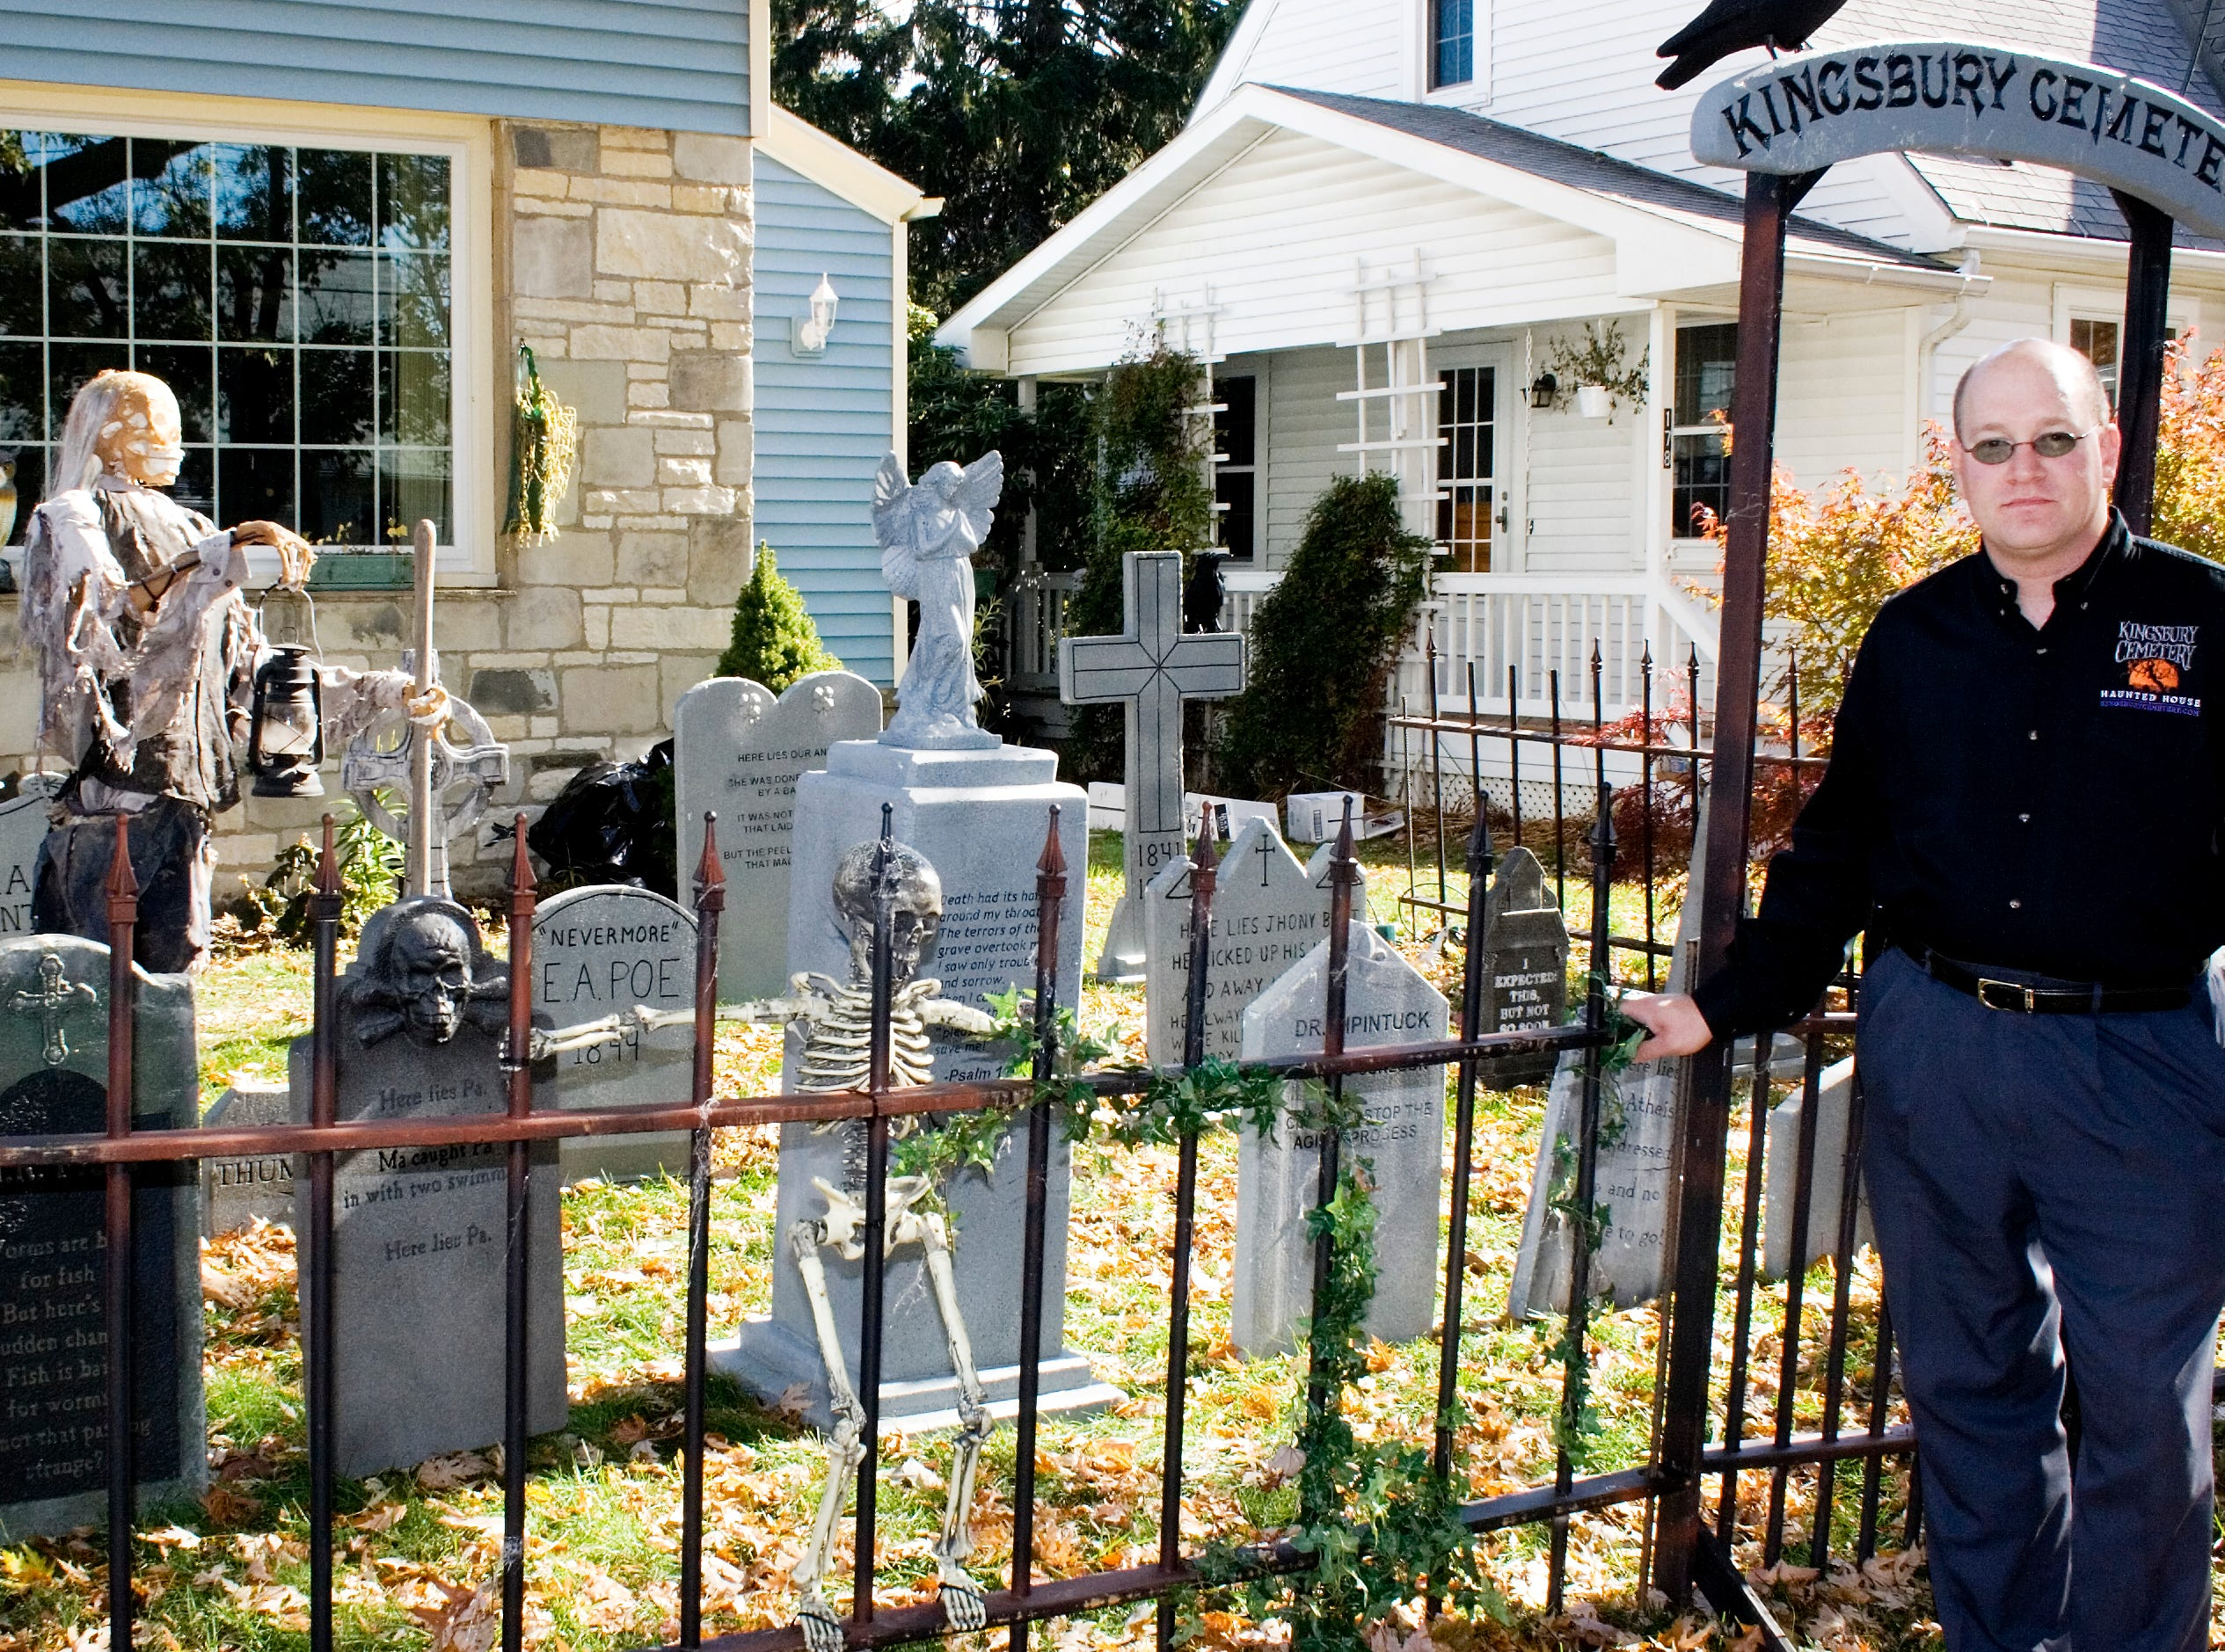 2008: A haunted graveyard is the first thing that greets visitors to Keith Hoover's Kingsbury Cemetery in Corning. Every Halloween, Hoover converts his Kingsbury Avenue home into an elaborate haunted house.